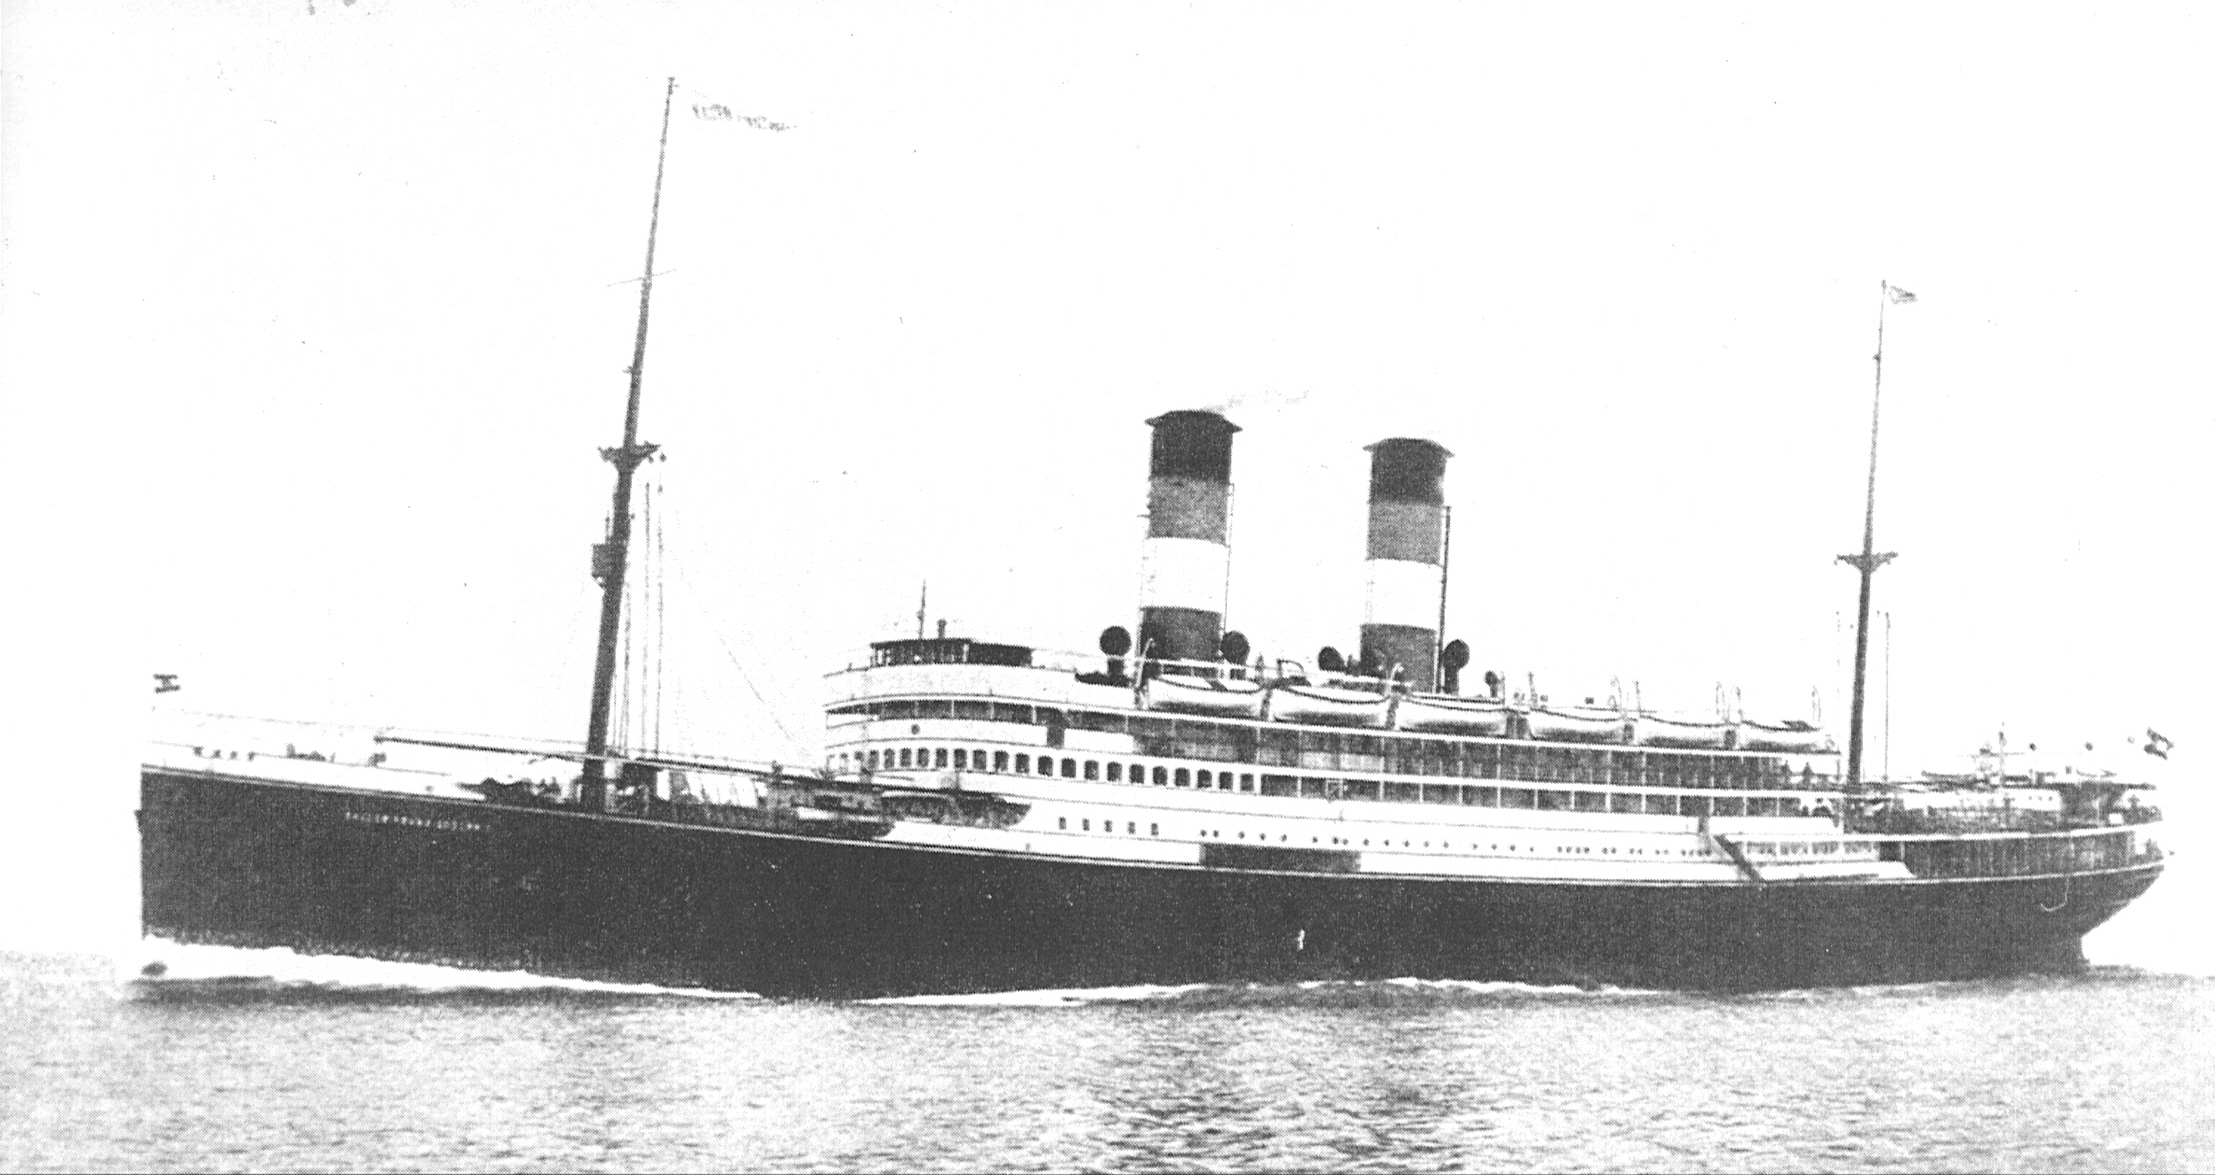 The SS Kaiser Franz Joseph I (12.567 t) of the Austro-Americana company was the largest passenger ship ever built in Austria. Because of its control over the Littorals and much of the Balkans, Austria-Hungary had access to several seaports.